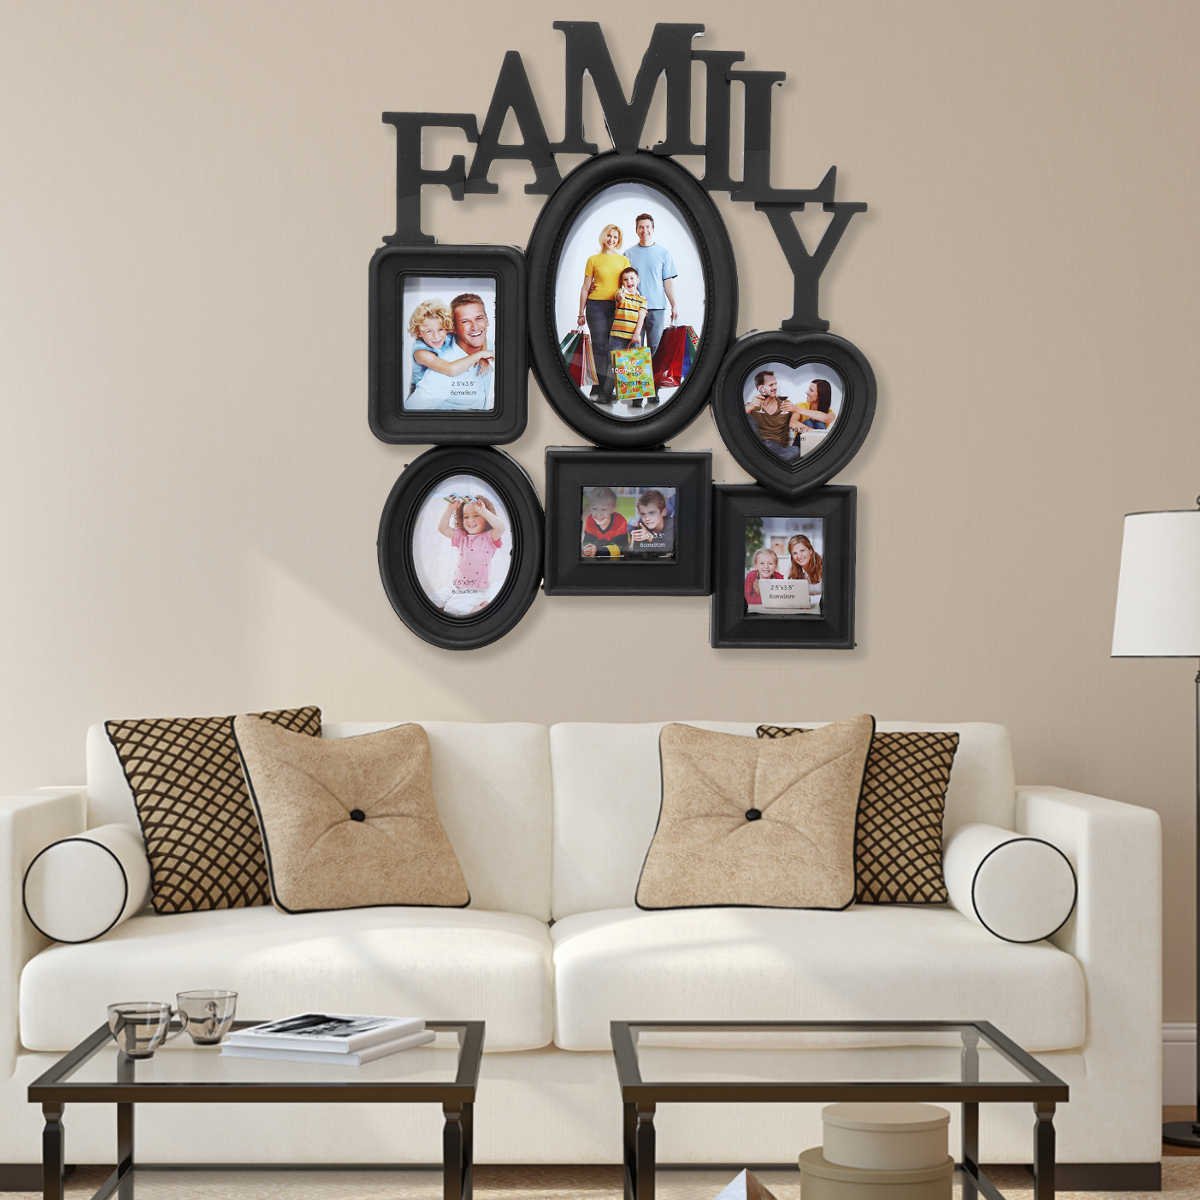 Family Photo Frame Wall Hanging 6 Pictures Holder Display Home Decor Gift Black 30x37cm Multi-sized Back Side with Pull Tabs